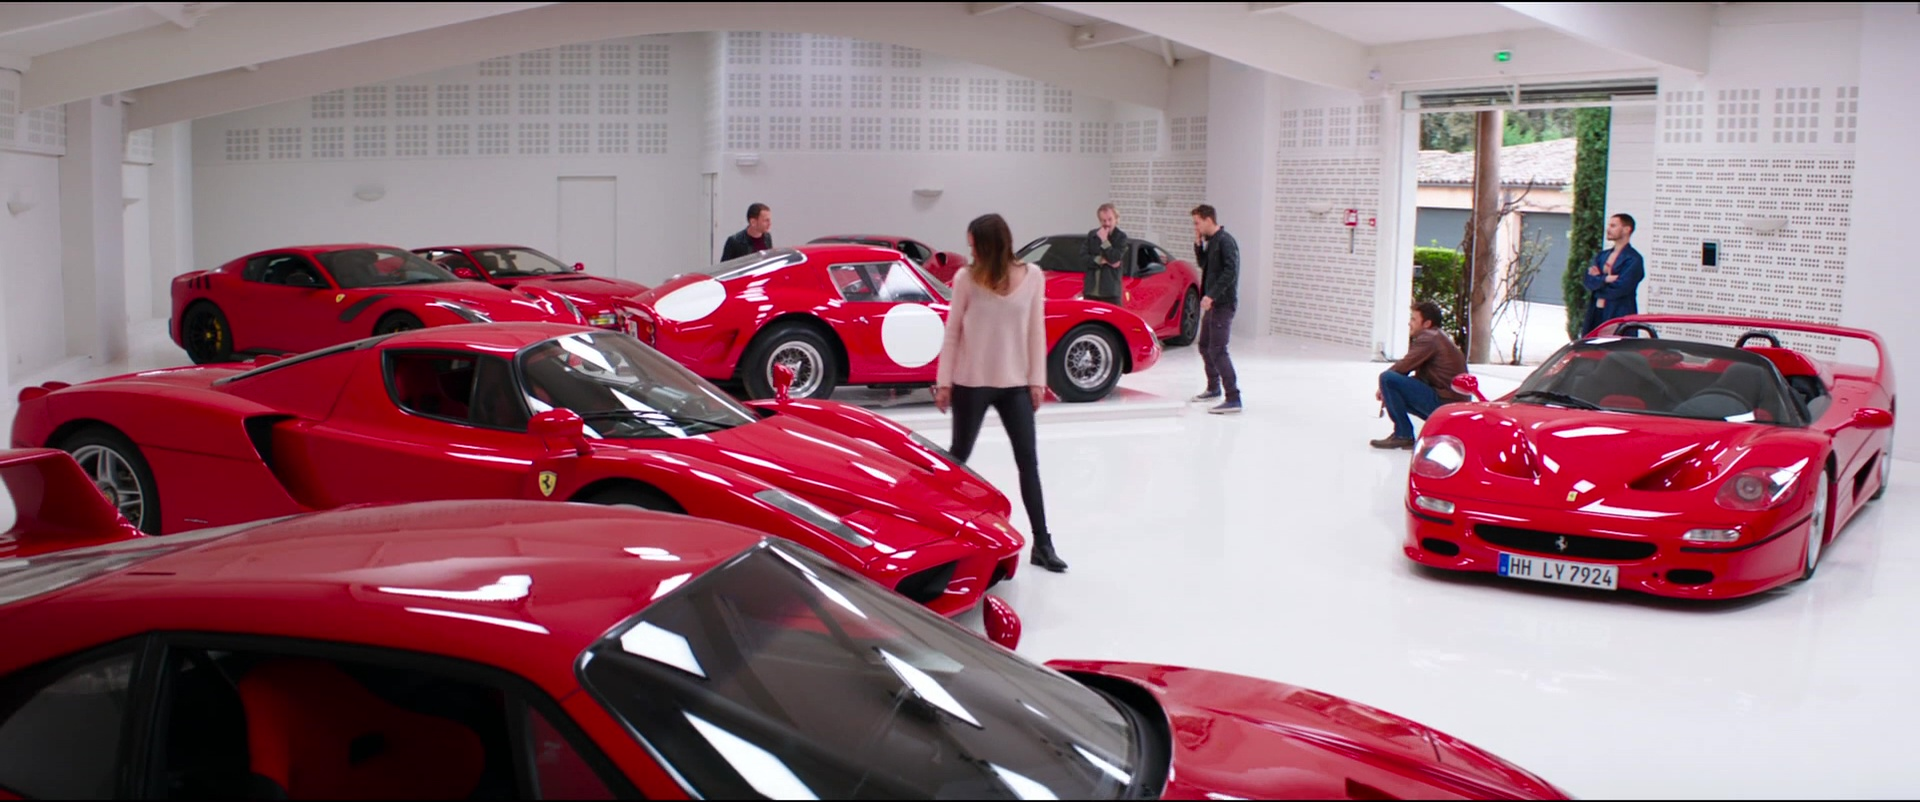 Ferrari Cars In Overdrive 2017 Movie